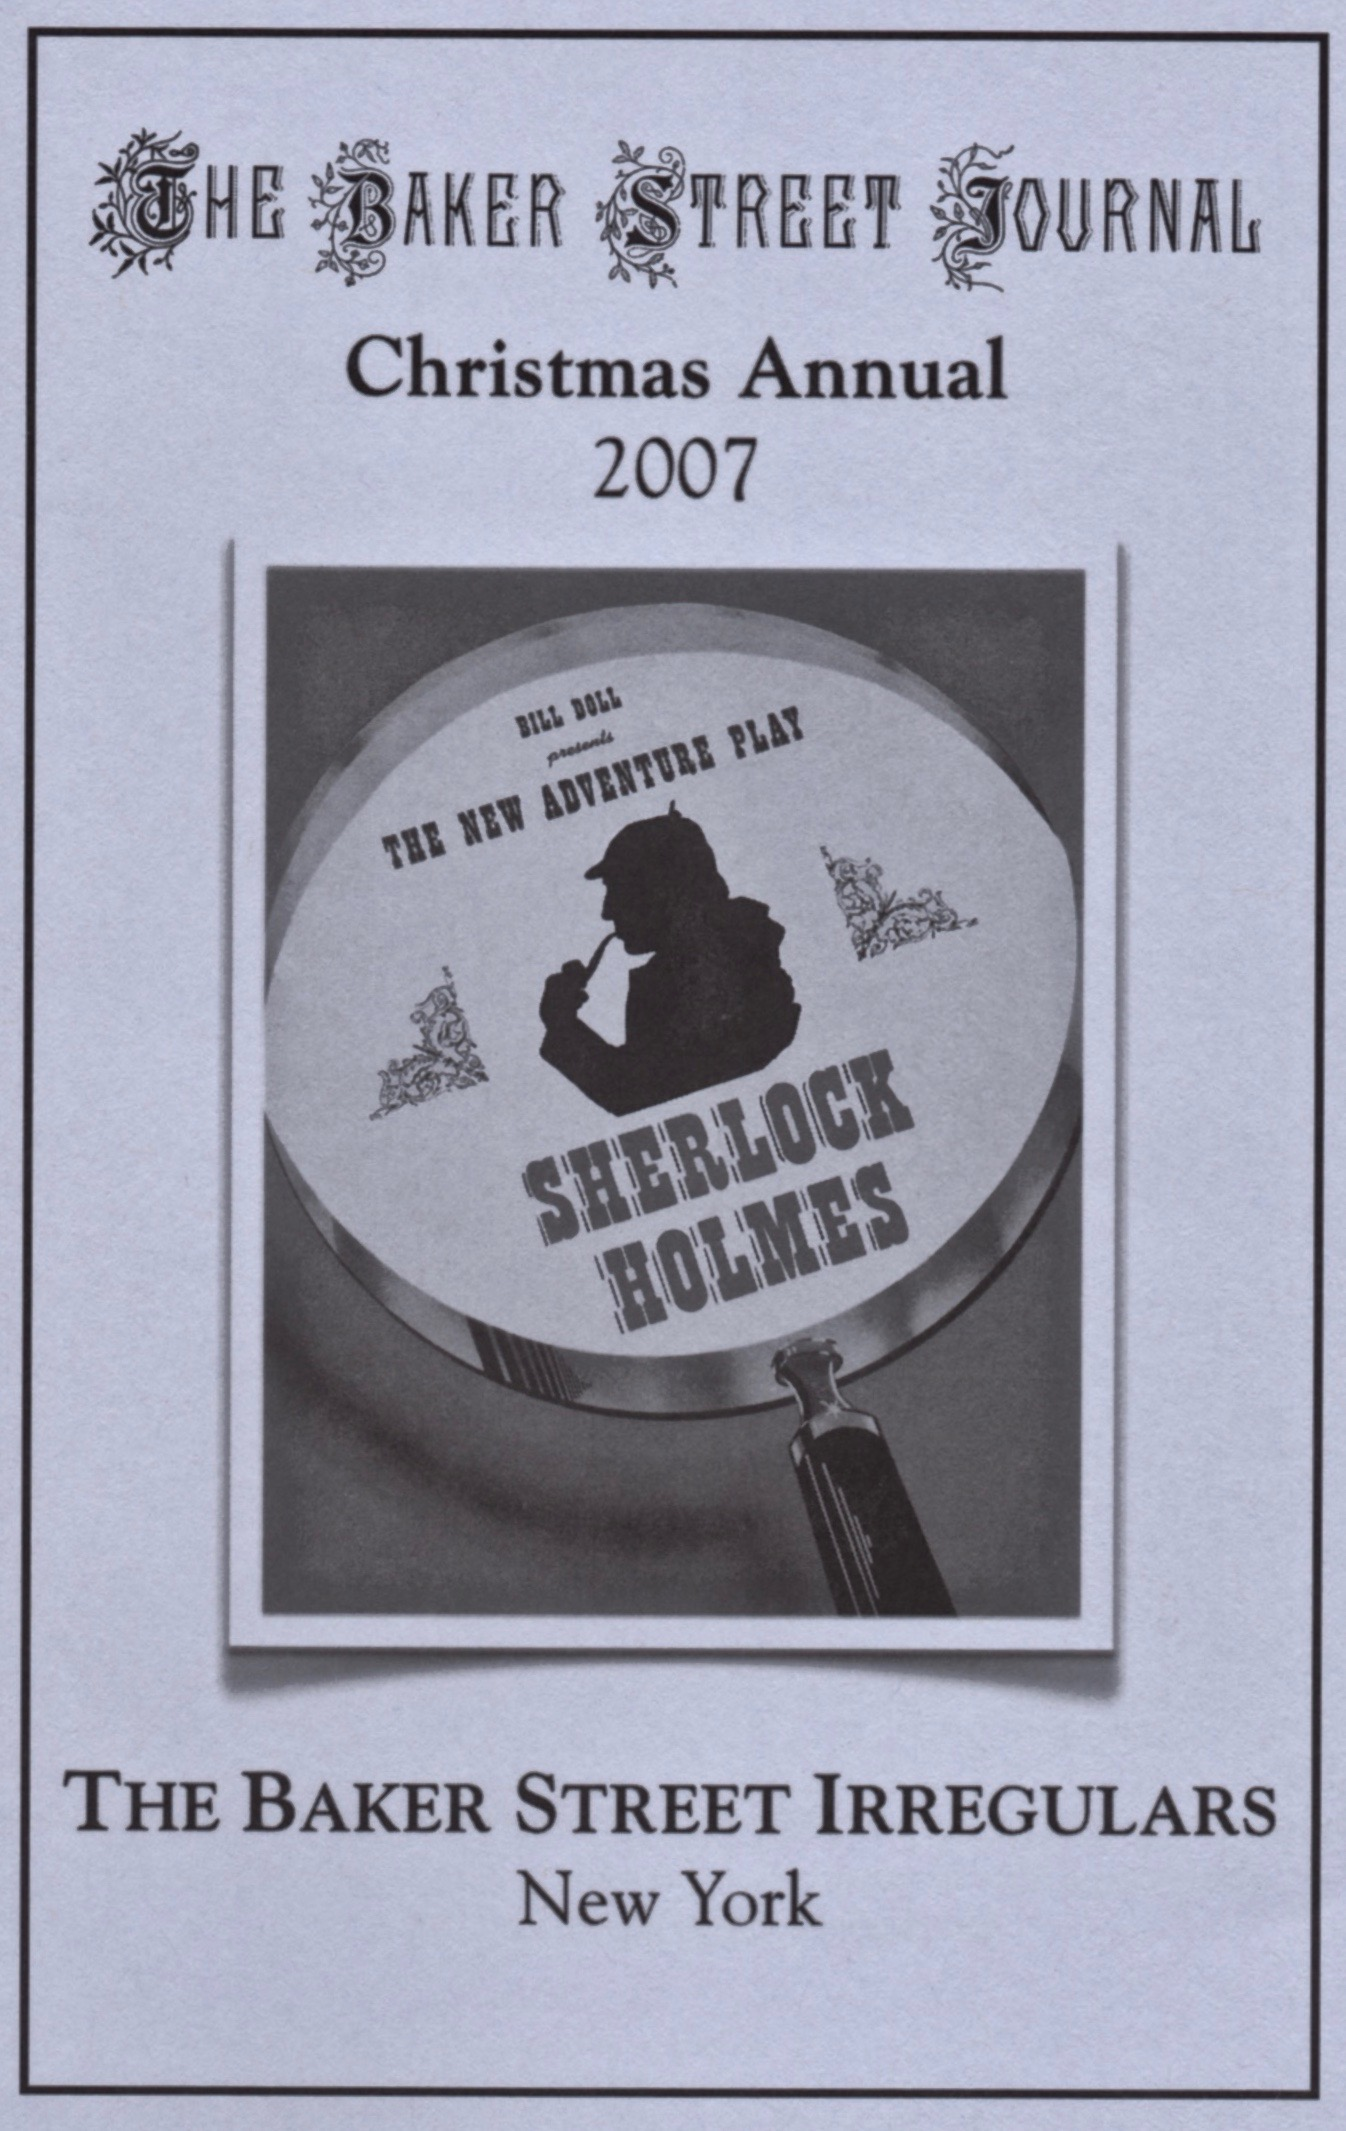 Susan Dahlinger and Glen Miranker tell the sad but true tale of Basil Rathbone's play in the  2007 Christmas Annual  for  The Baker Street Journal .